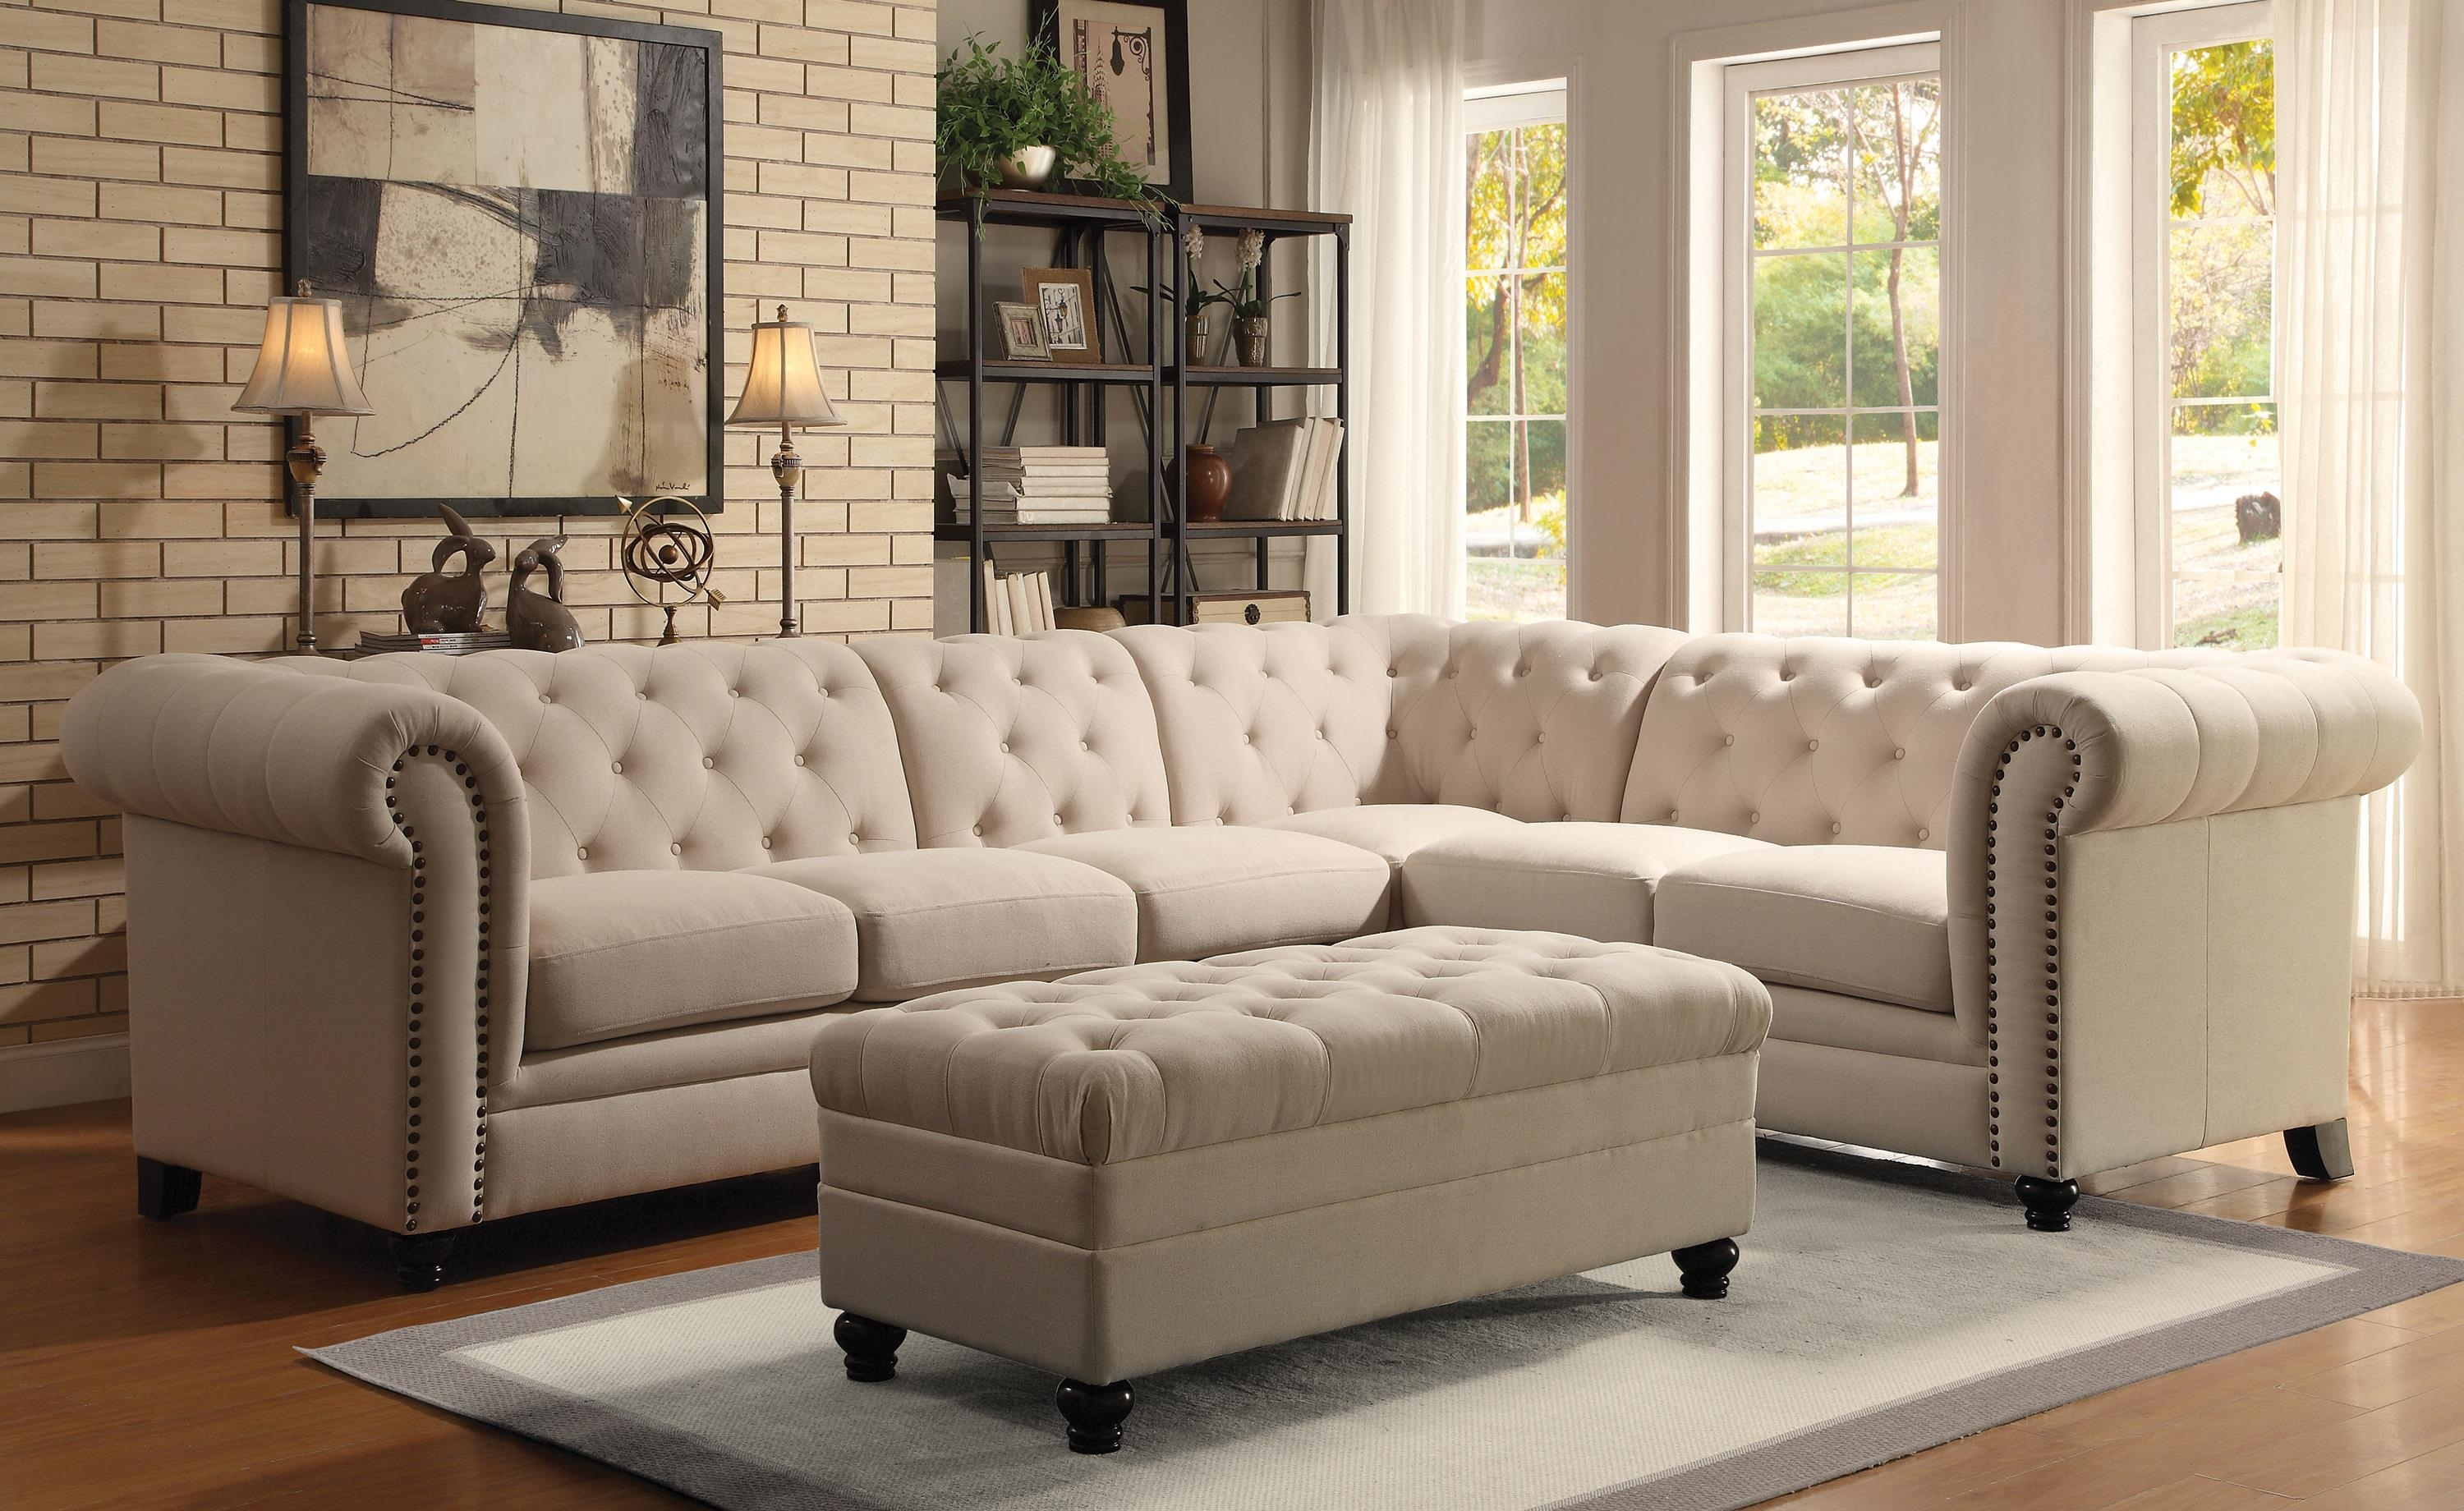 Furniture : Ethan Allen Richmond Sofa Sofa Kijiji Oakville Tufted Within Oakville Sectional Sofas (View 6 of 10)